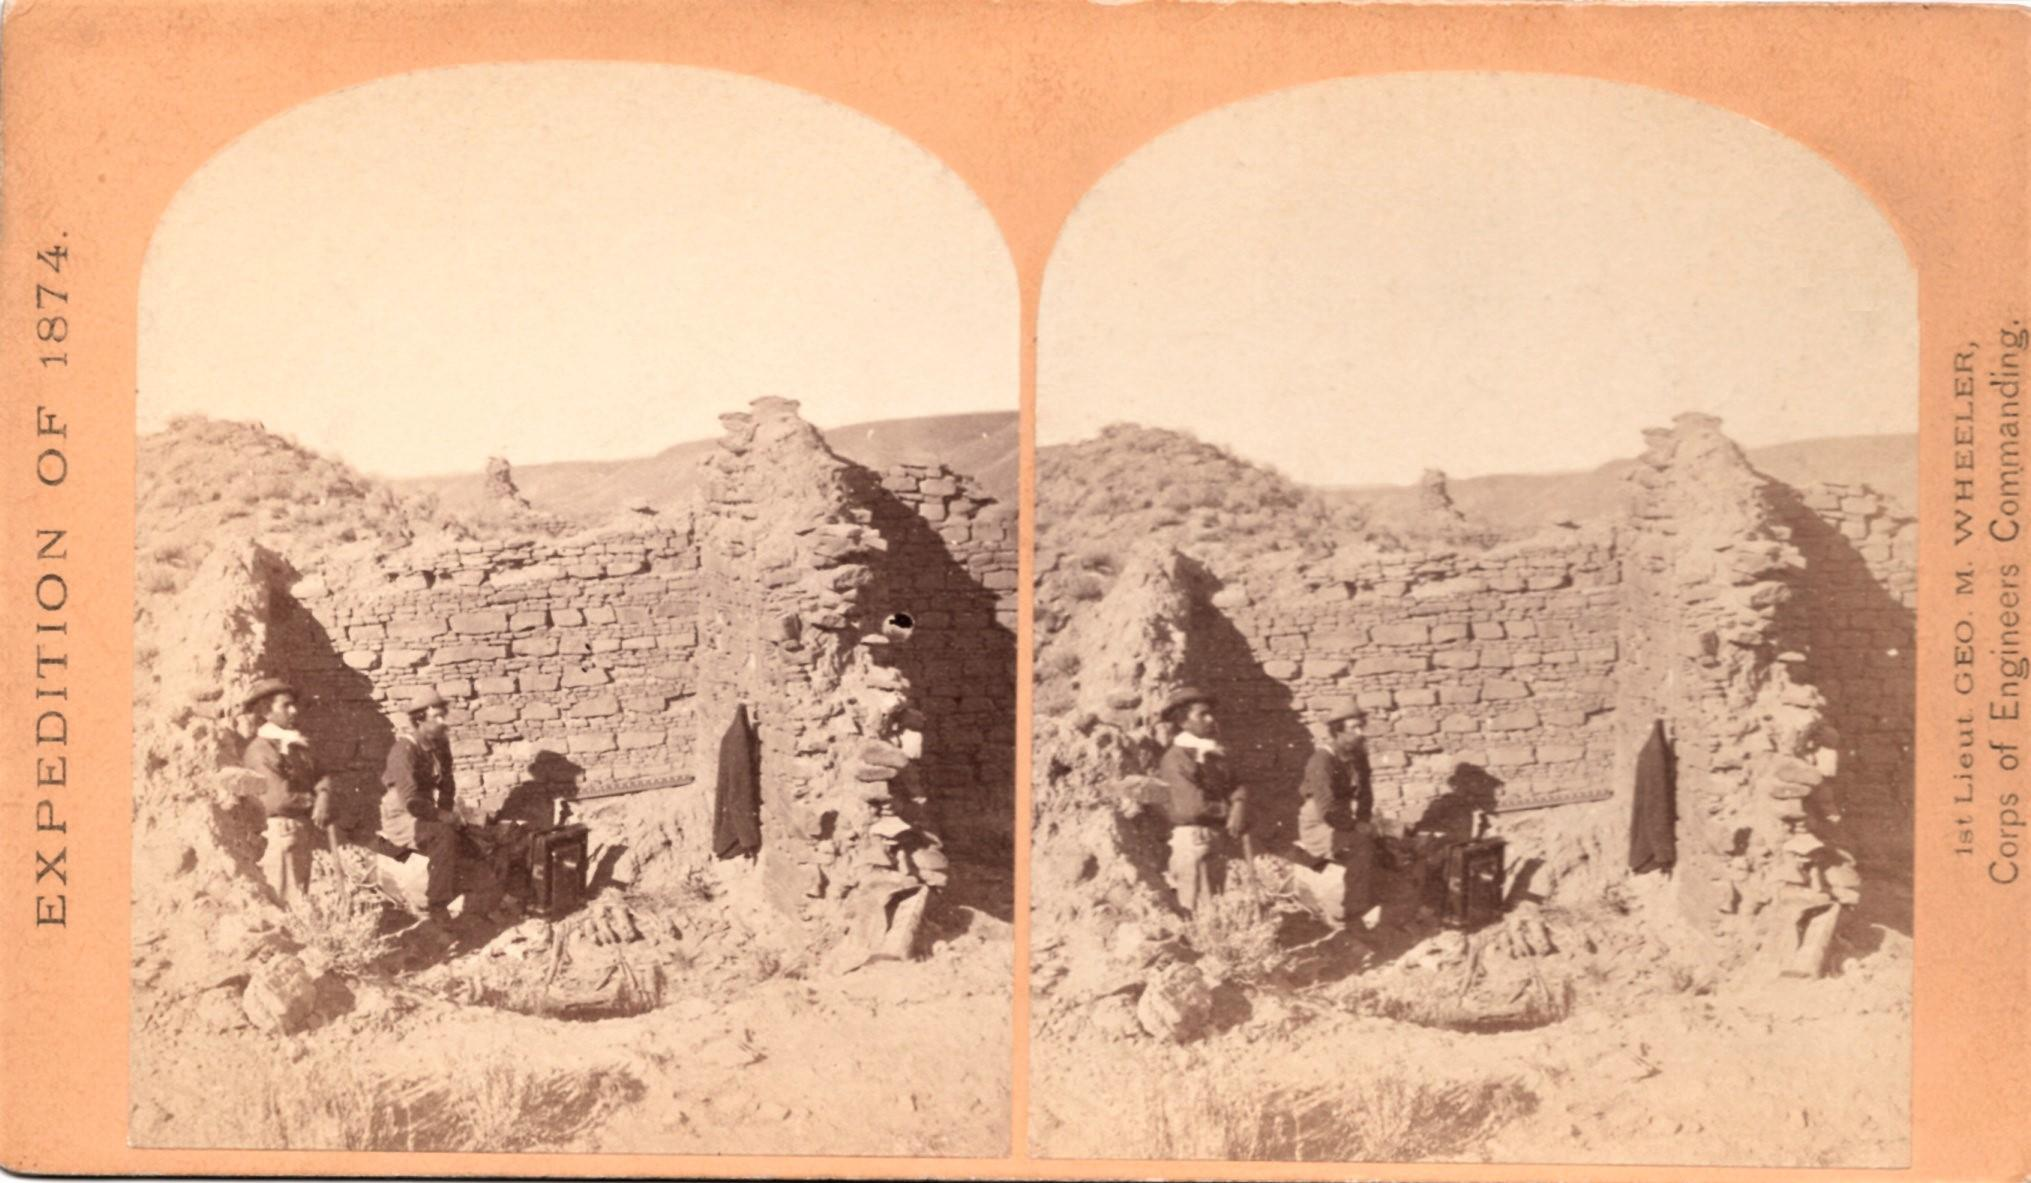 WHEELER_EXPEDITION_STEREOVIEW_No_43_CHARACTERISTIC_RUIN_OF_THE_PUEBLO_SAN_JUAN_NEW_MEXICO_OSullivan_Timothy_H_Very_Good_Softcover